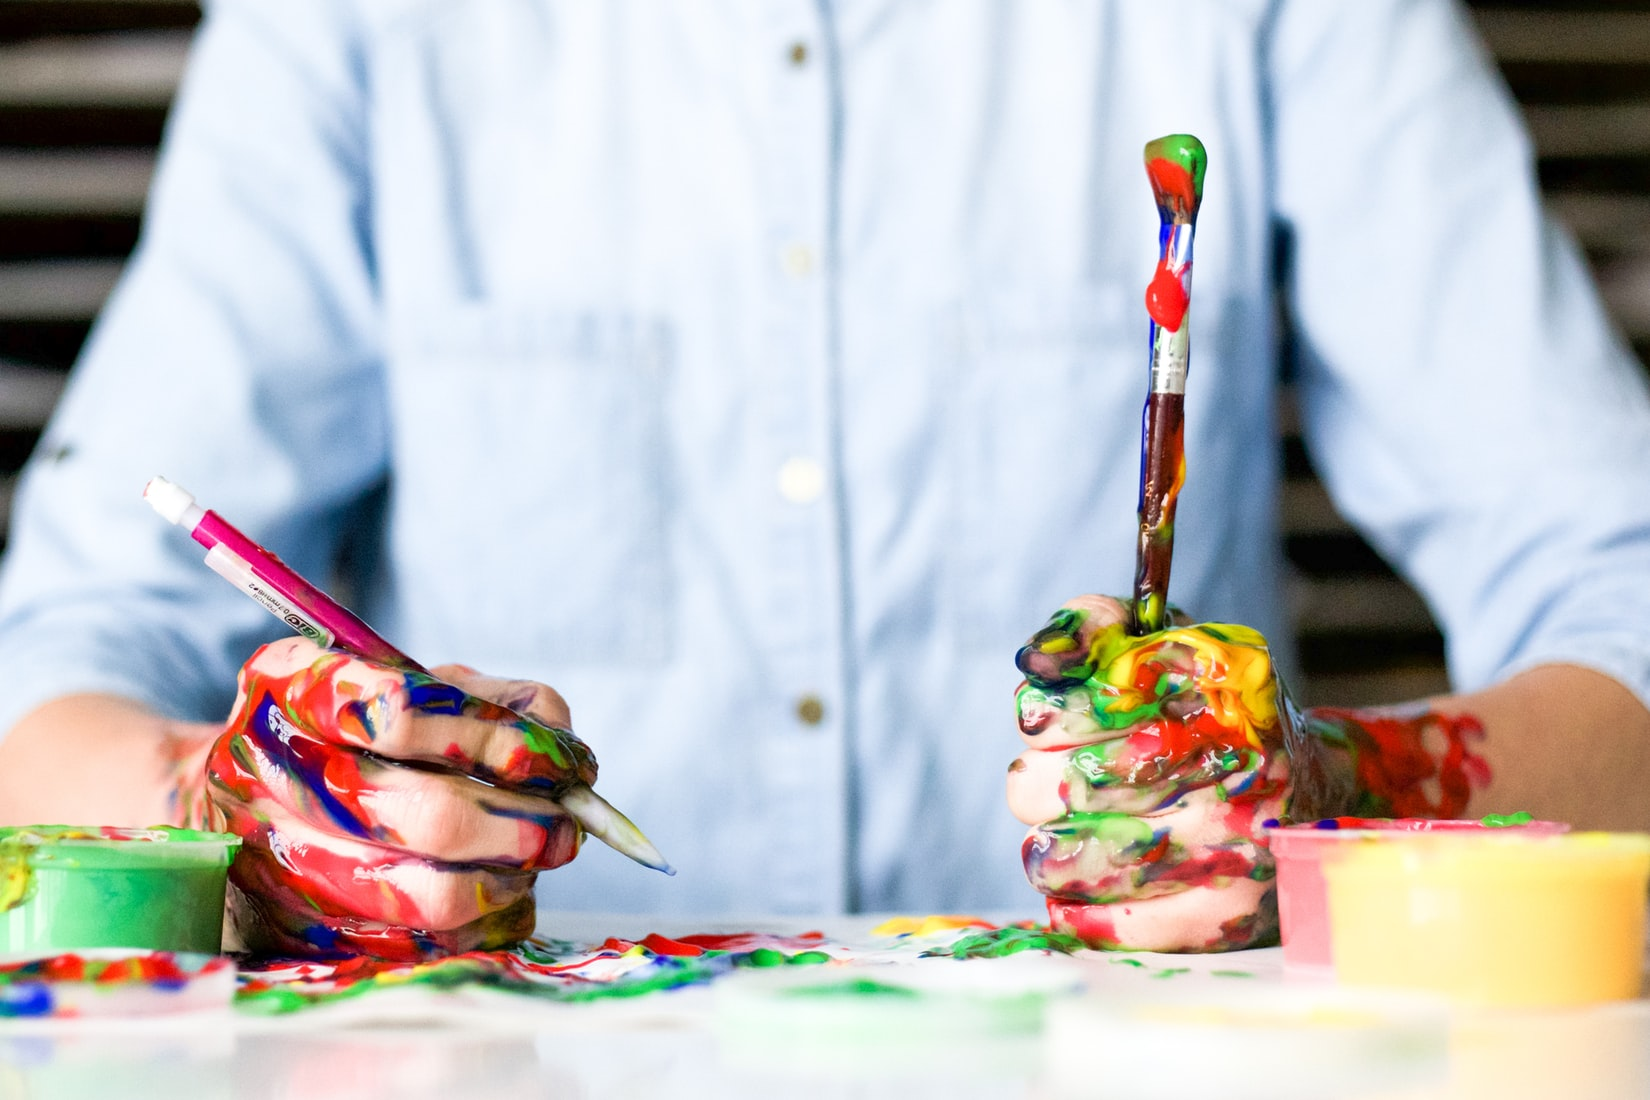 Person holding paintbrush covered in paint